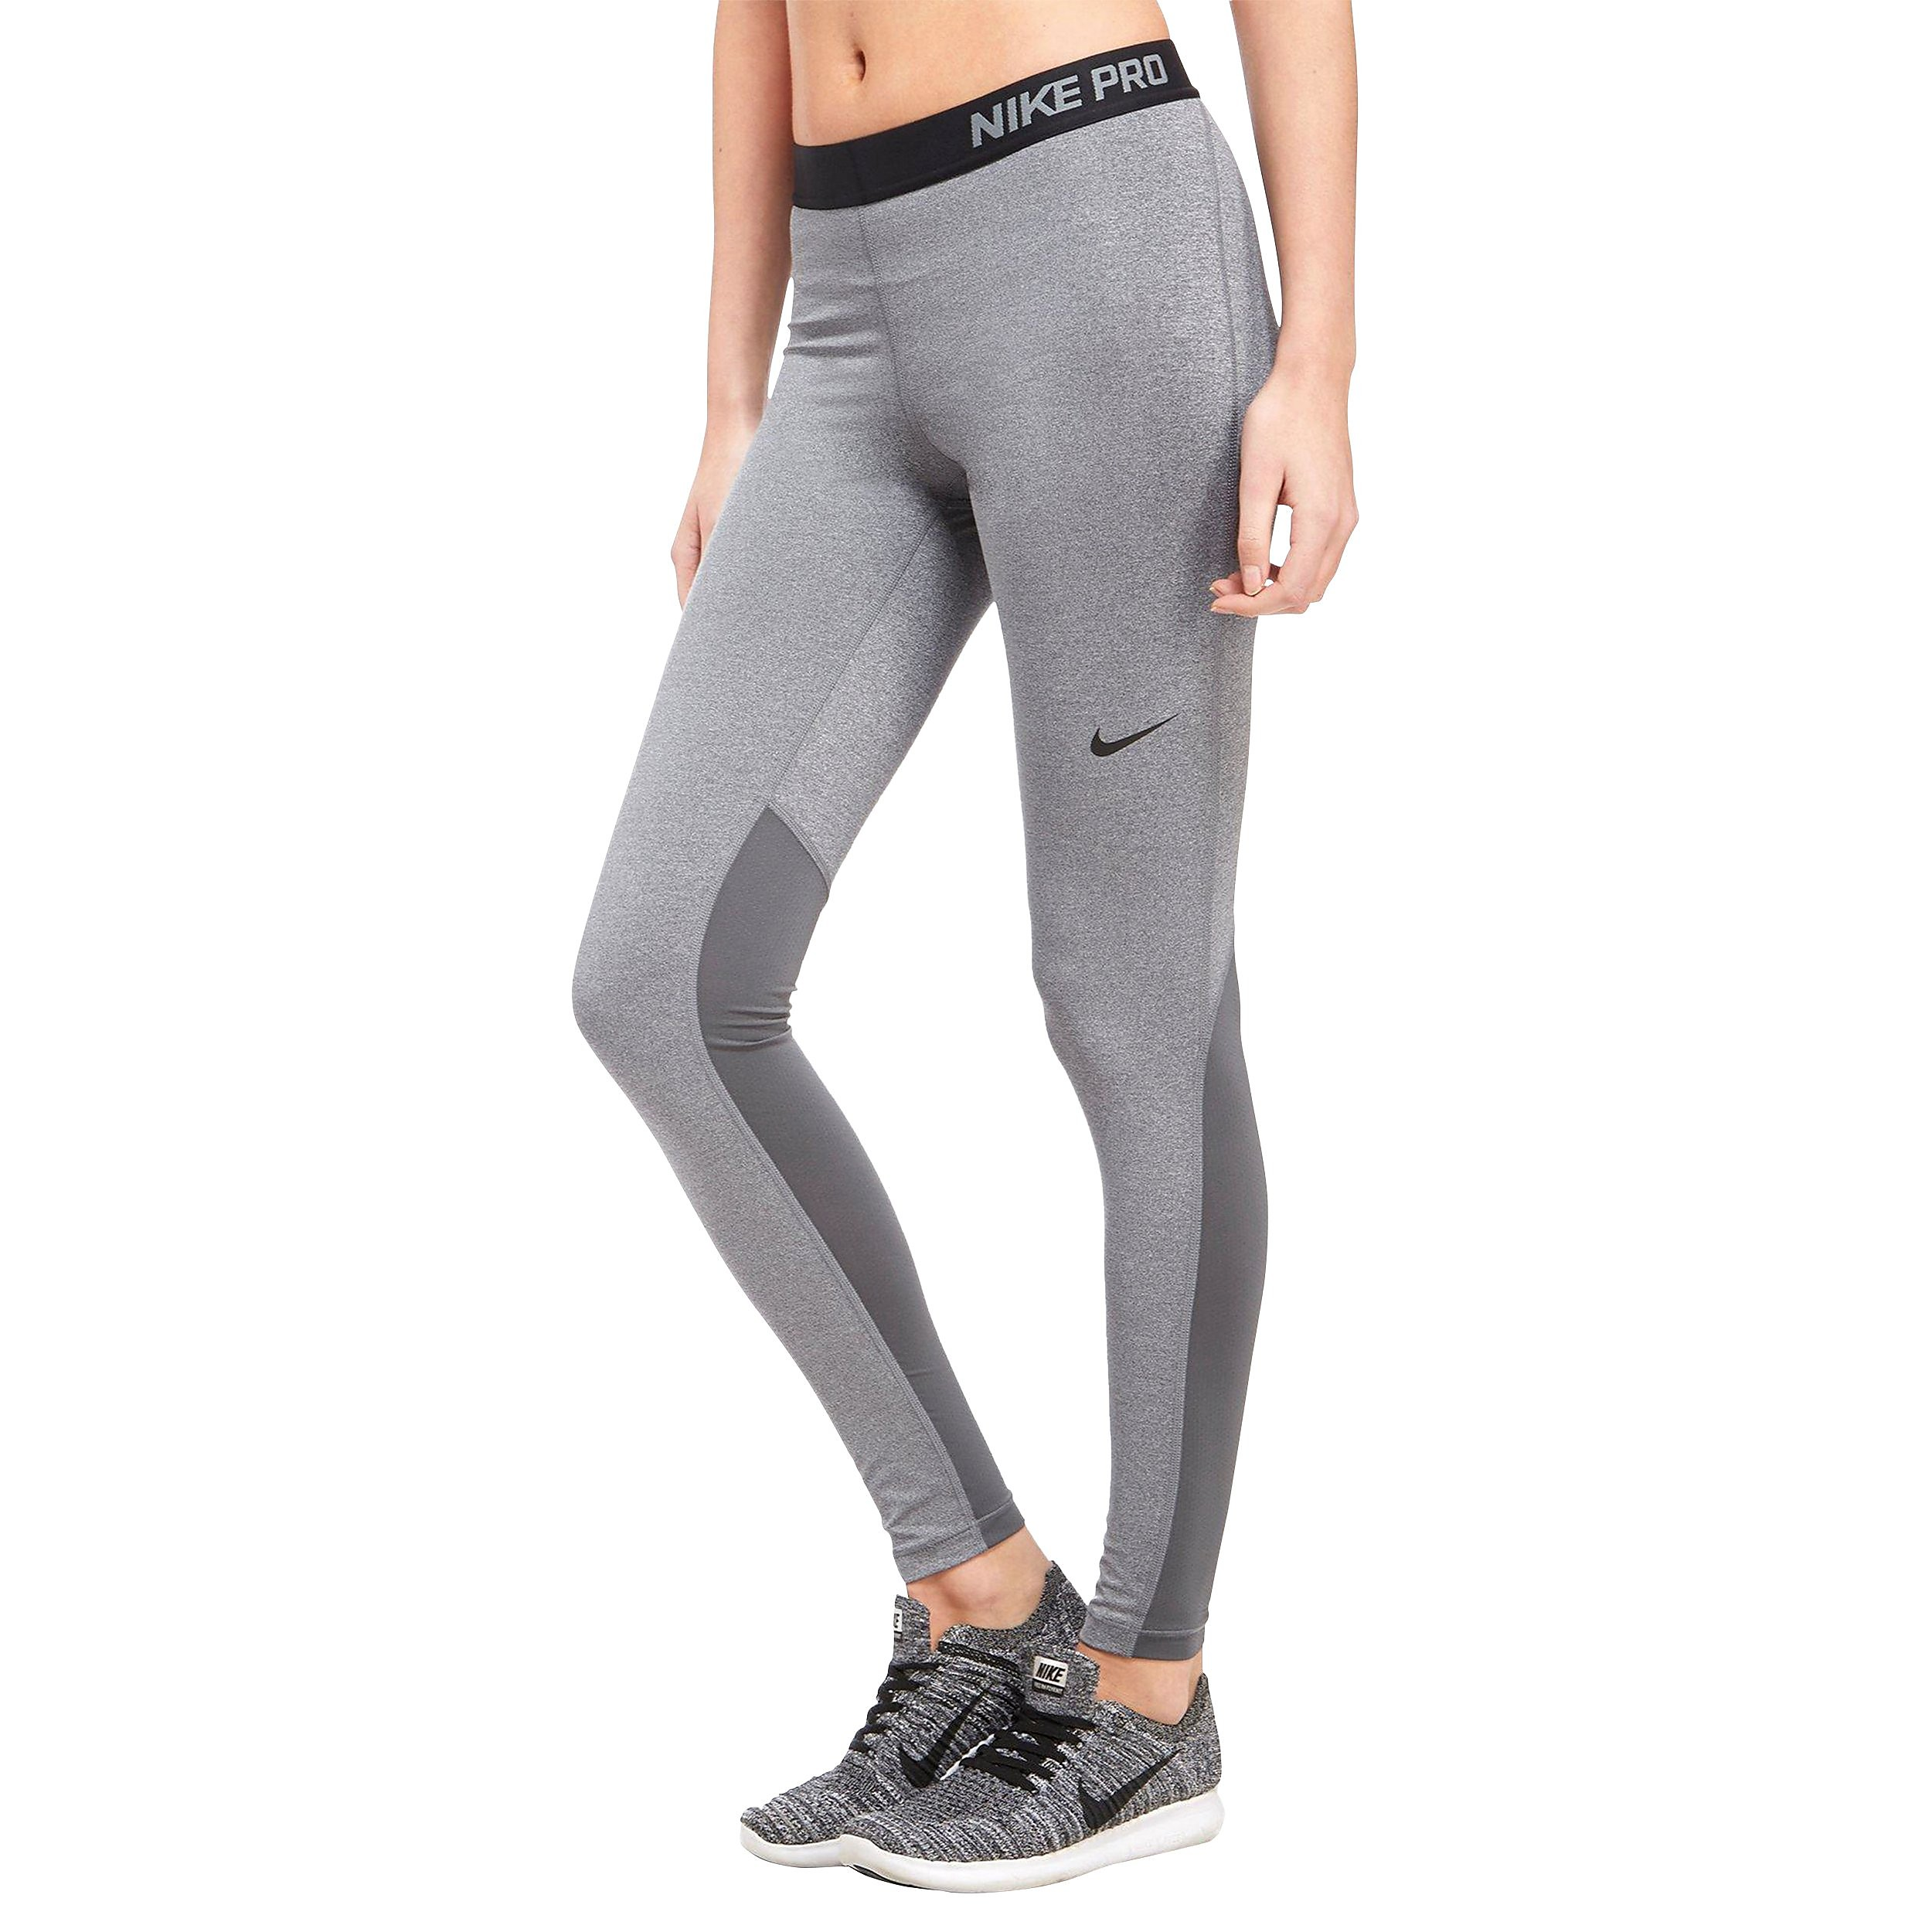 Nike Pro Cool Women's Tights